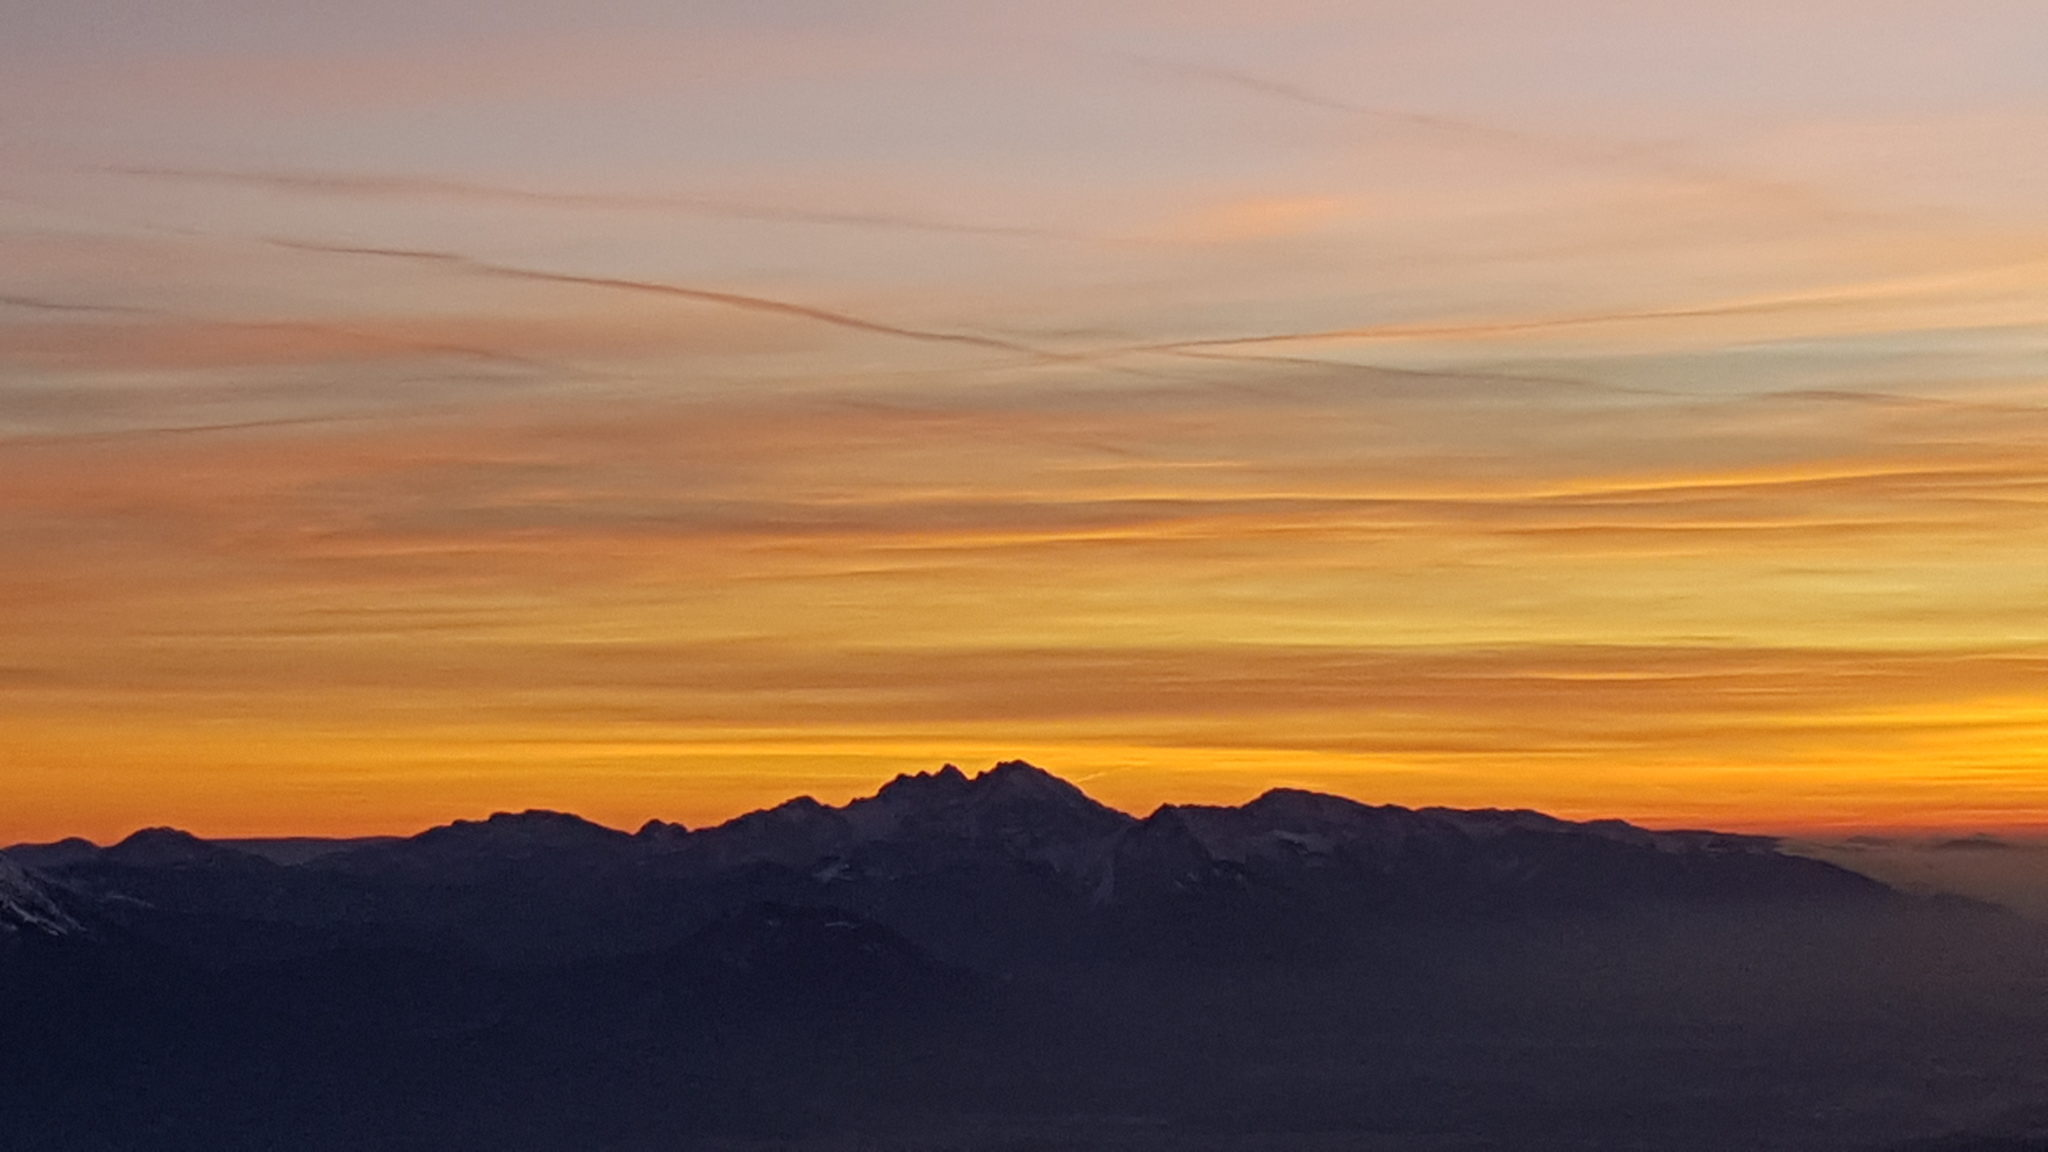 Julian Alps for sunset from Triglav, Slovenia